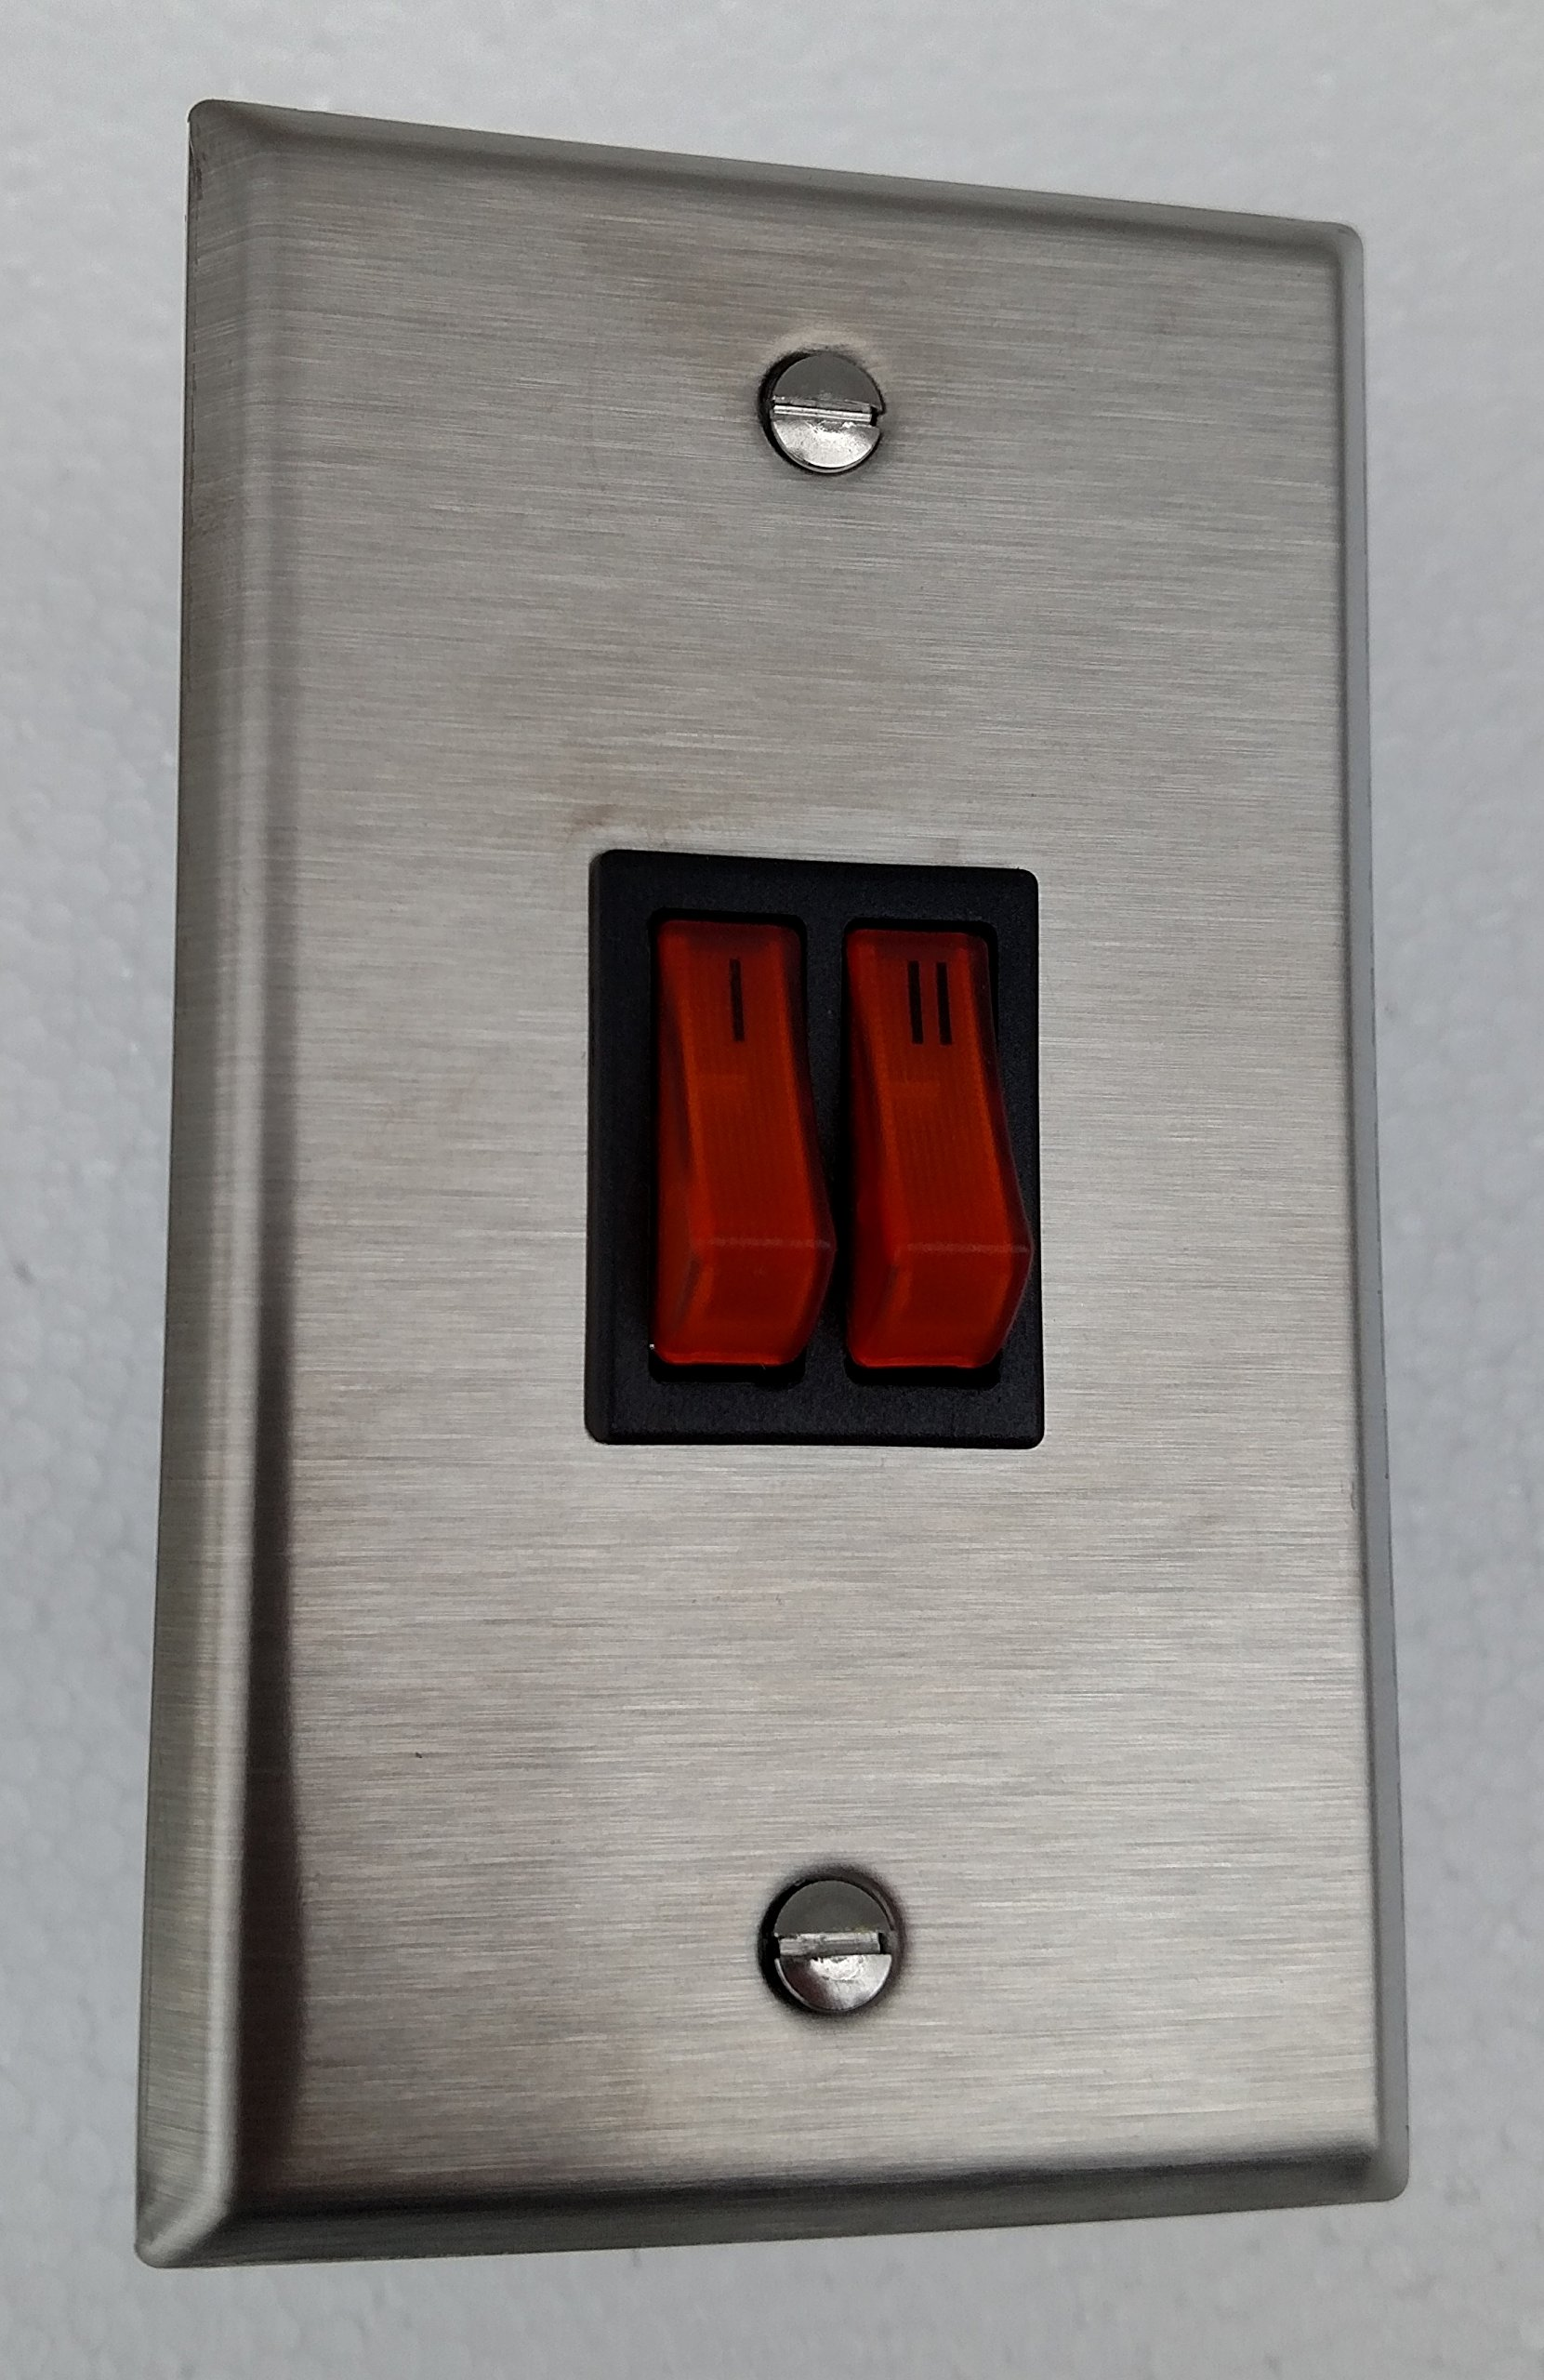 Schwank JM-0201-TS Illuminated Single Gang Switch for 2-Stage Heaters